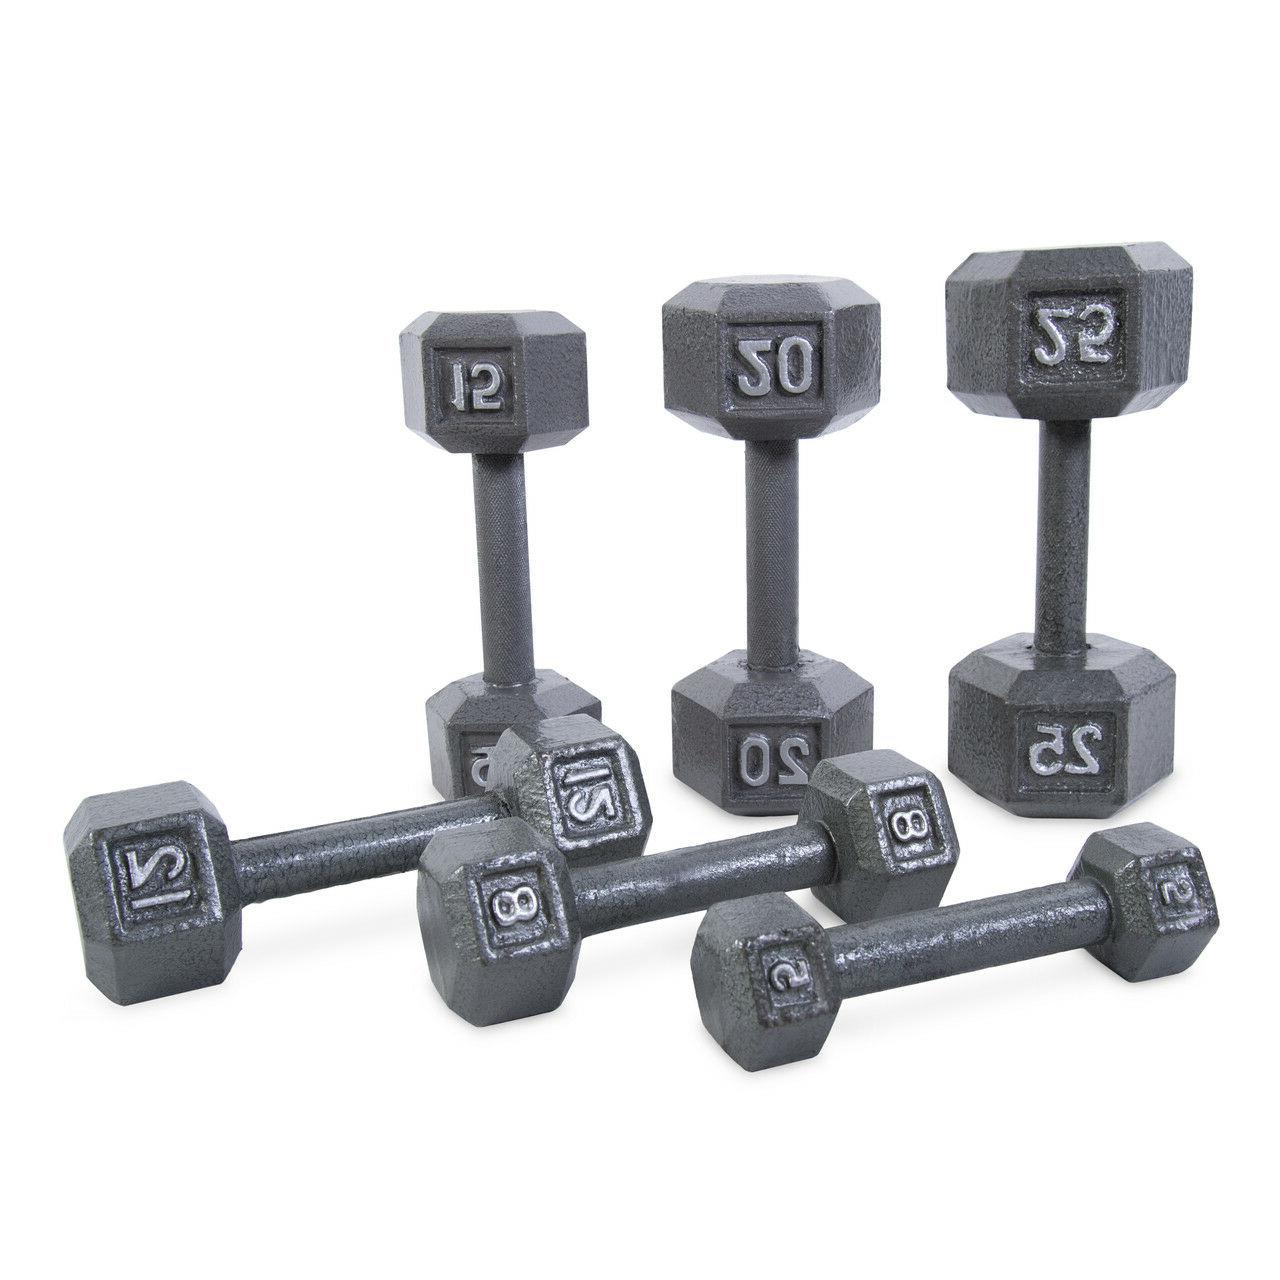 SET 2 IRON Gym Fitness Workout Barbell Weights